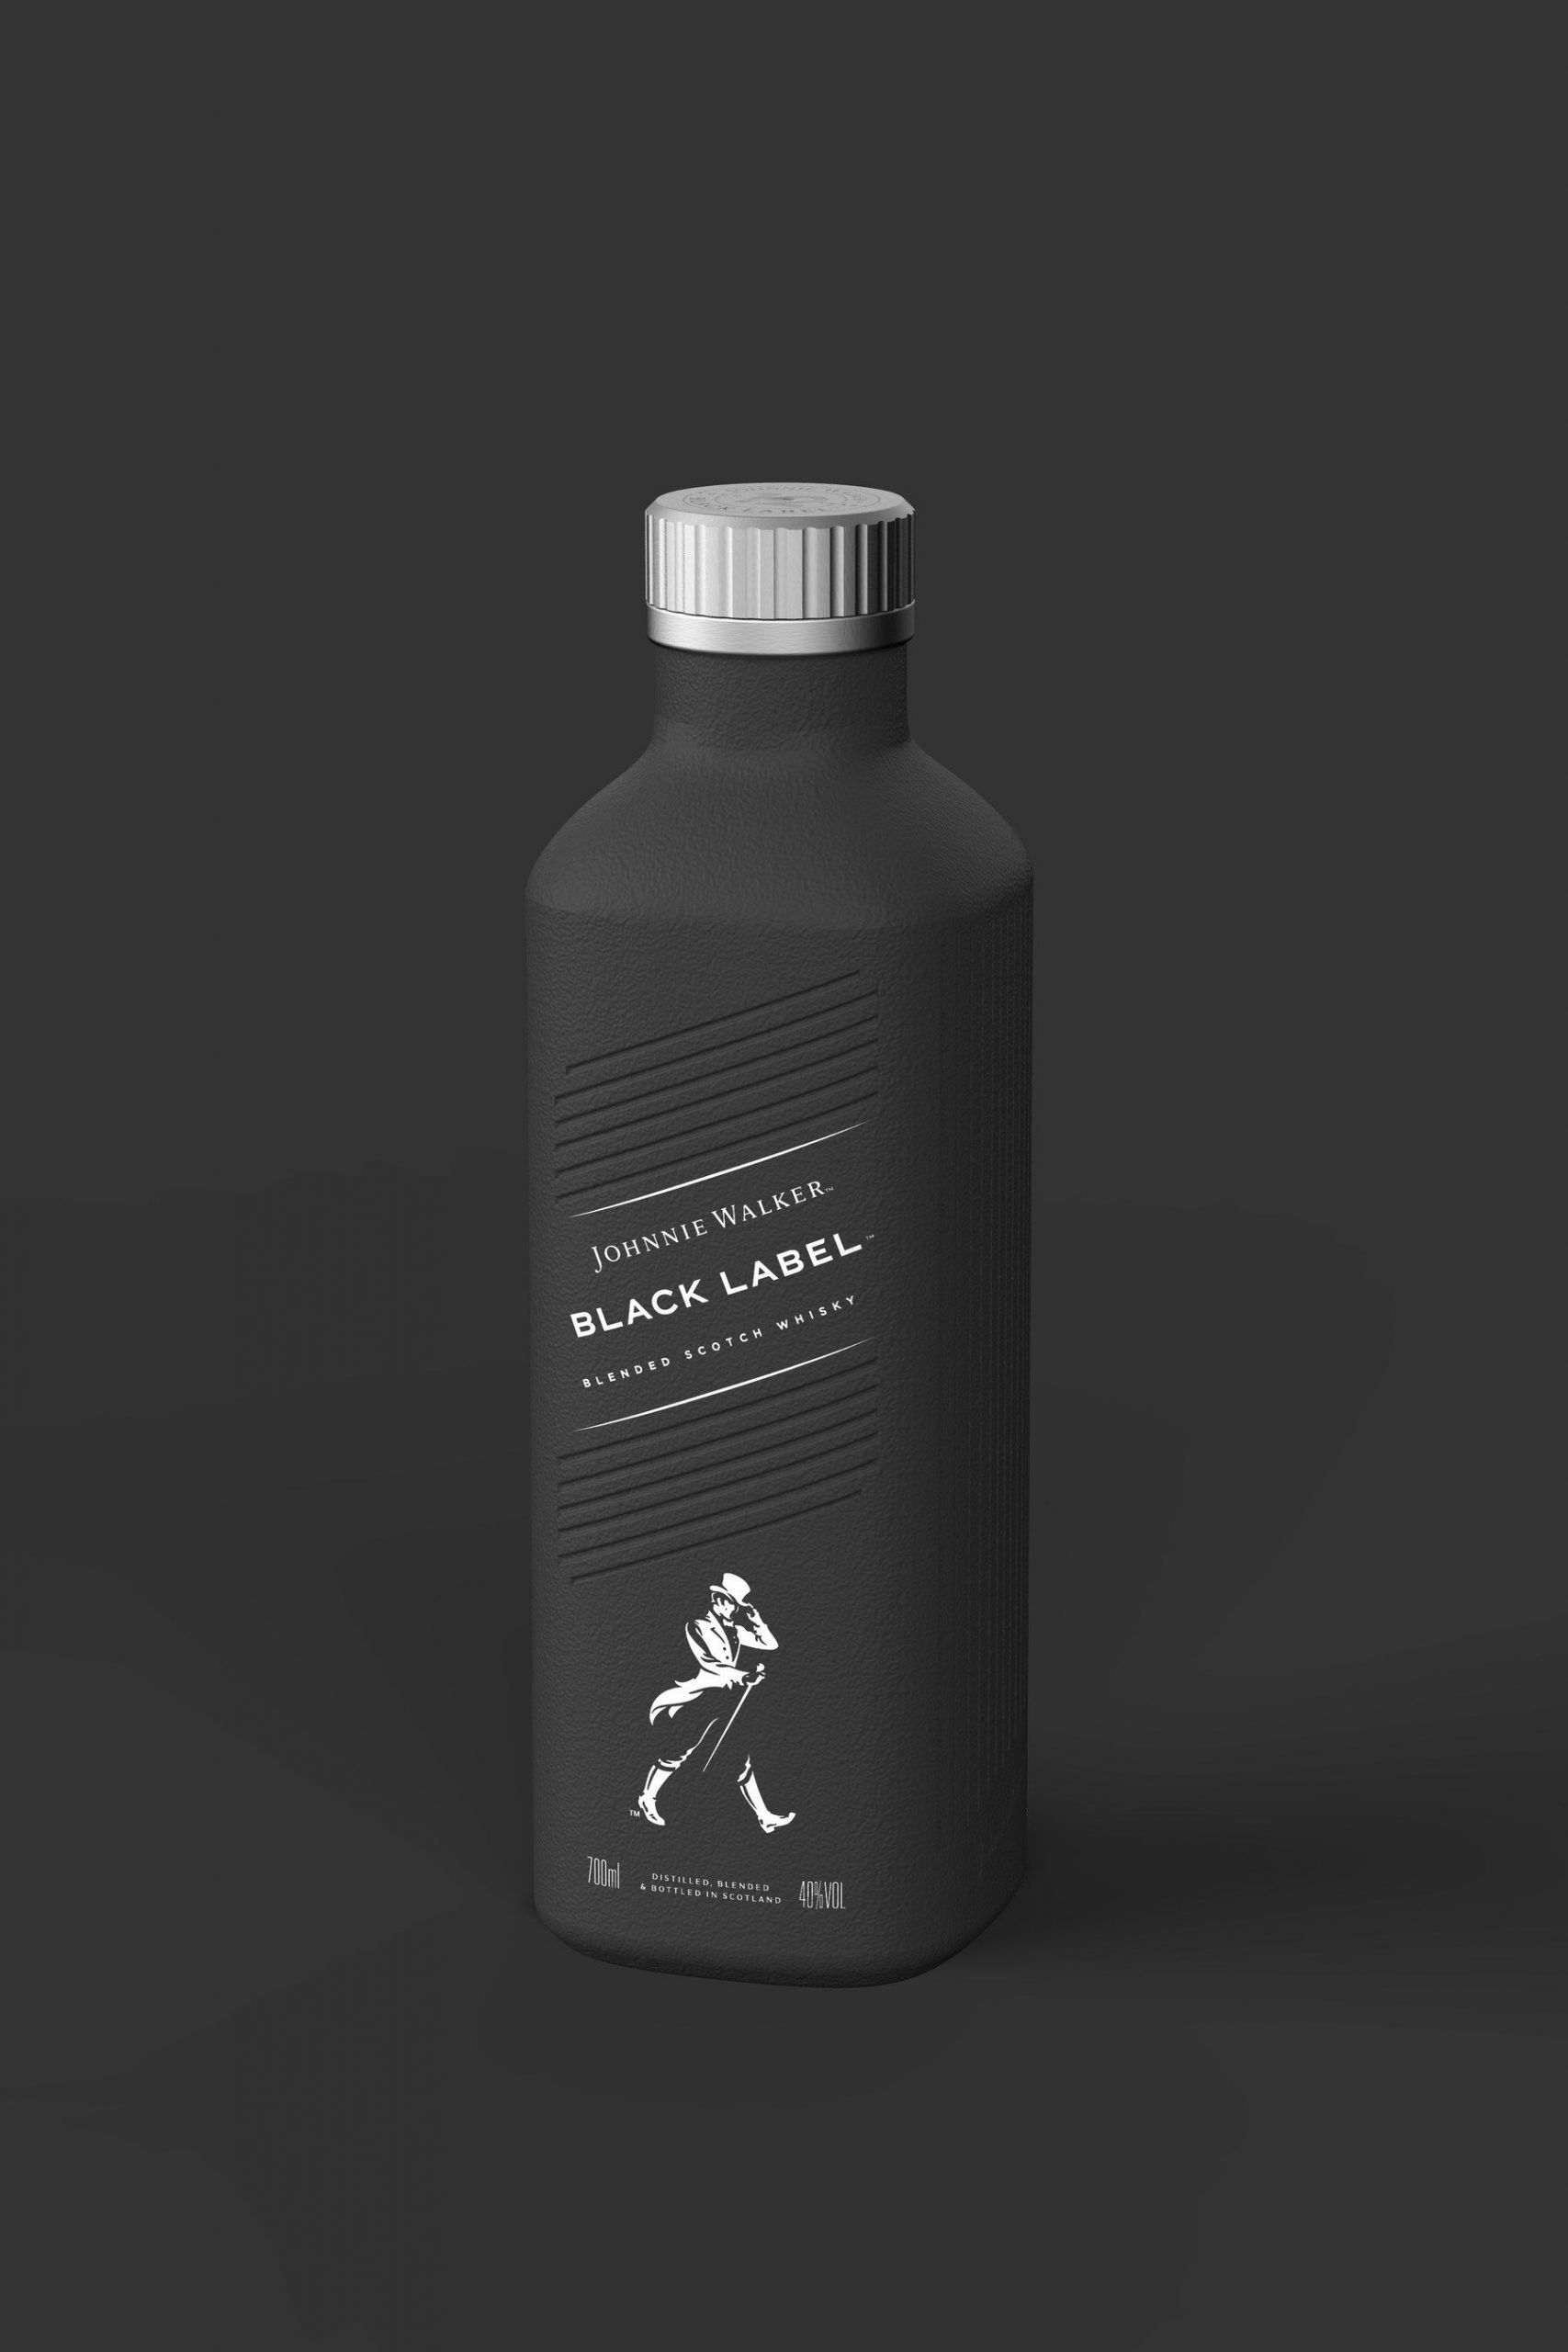 Johnnie Walker's parent firm Diageo doubles down on sustainability with paper-based bottle